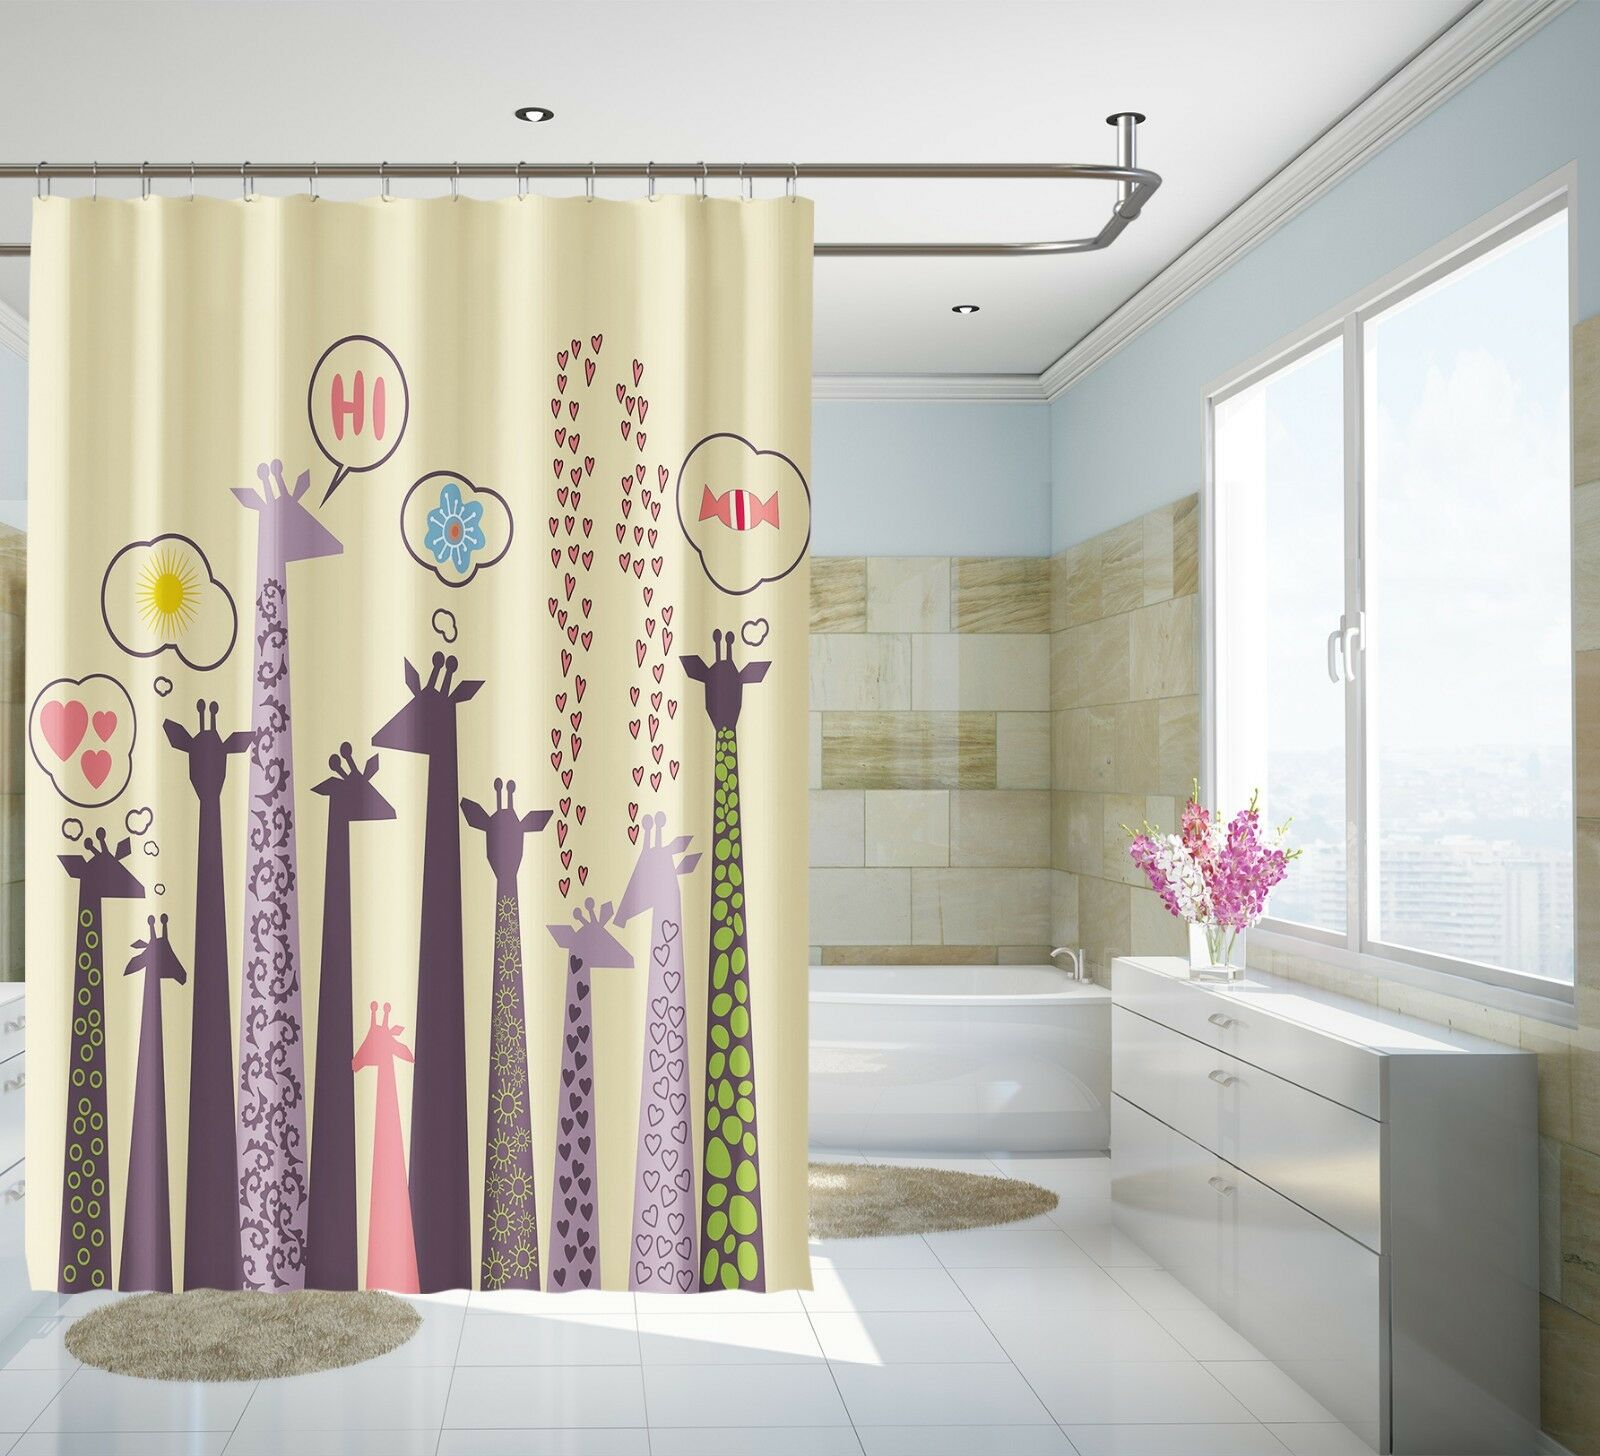 3d Nette Giraffe 9 Duschvorhang Wasserdicht Faser Bad Daheim Window Toilette De Home & Garden Shower Curtains